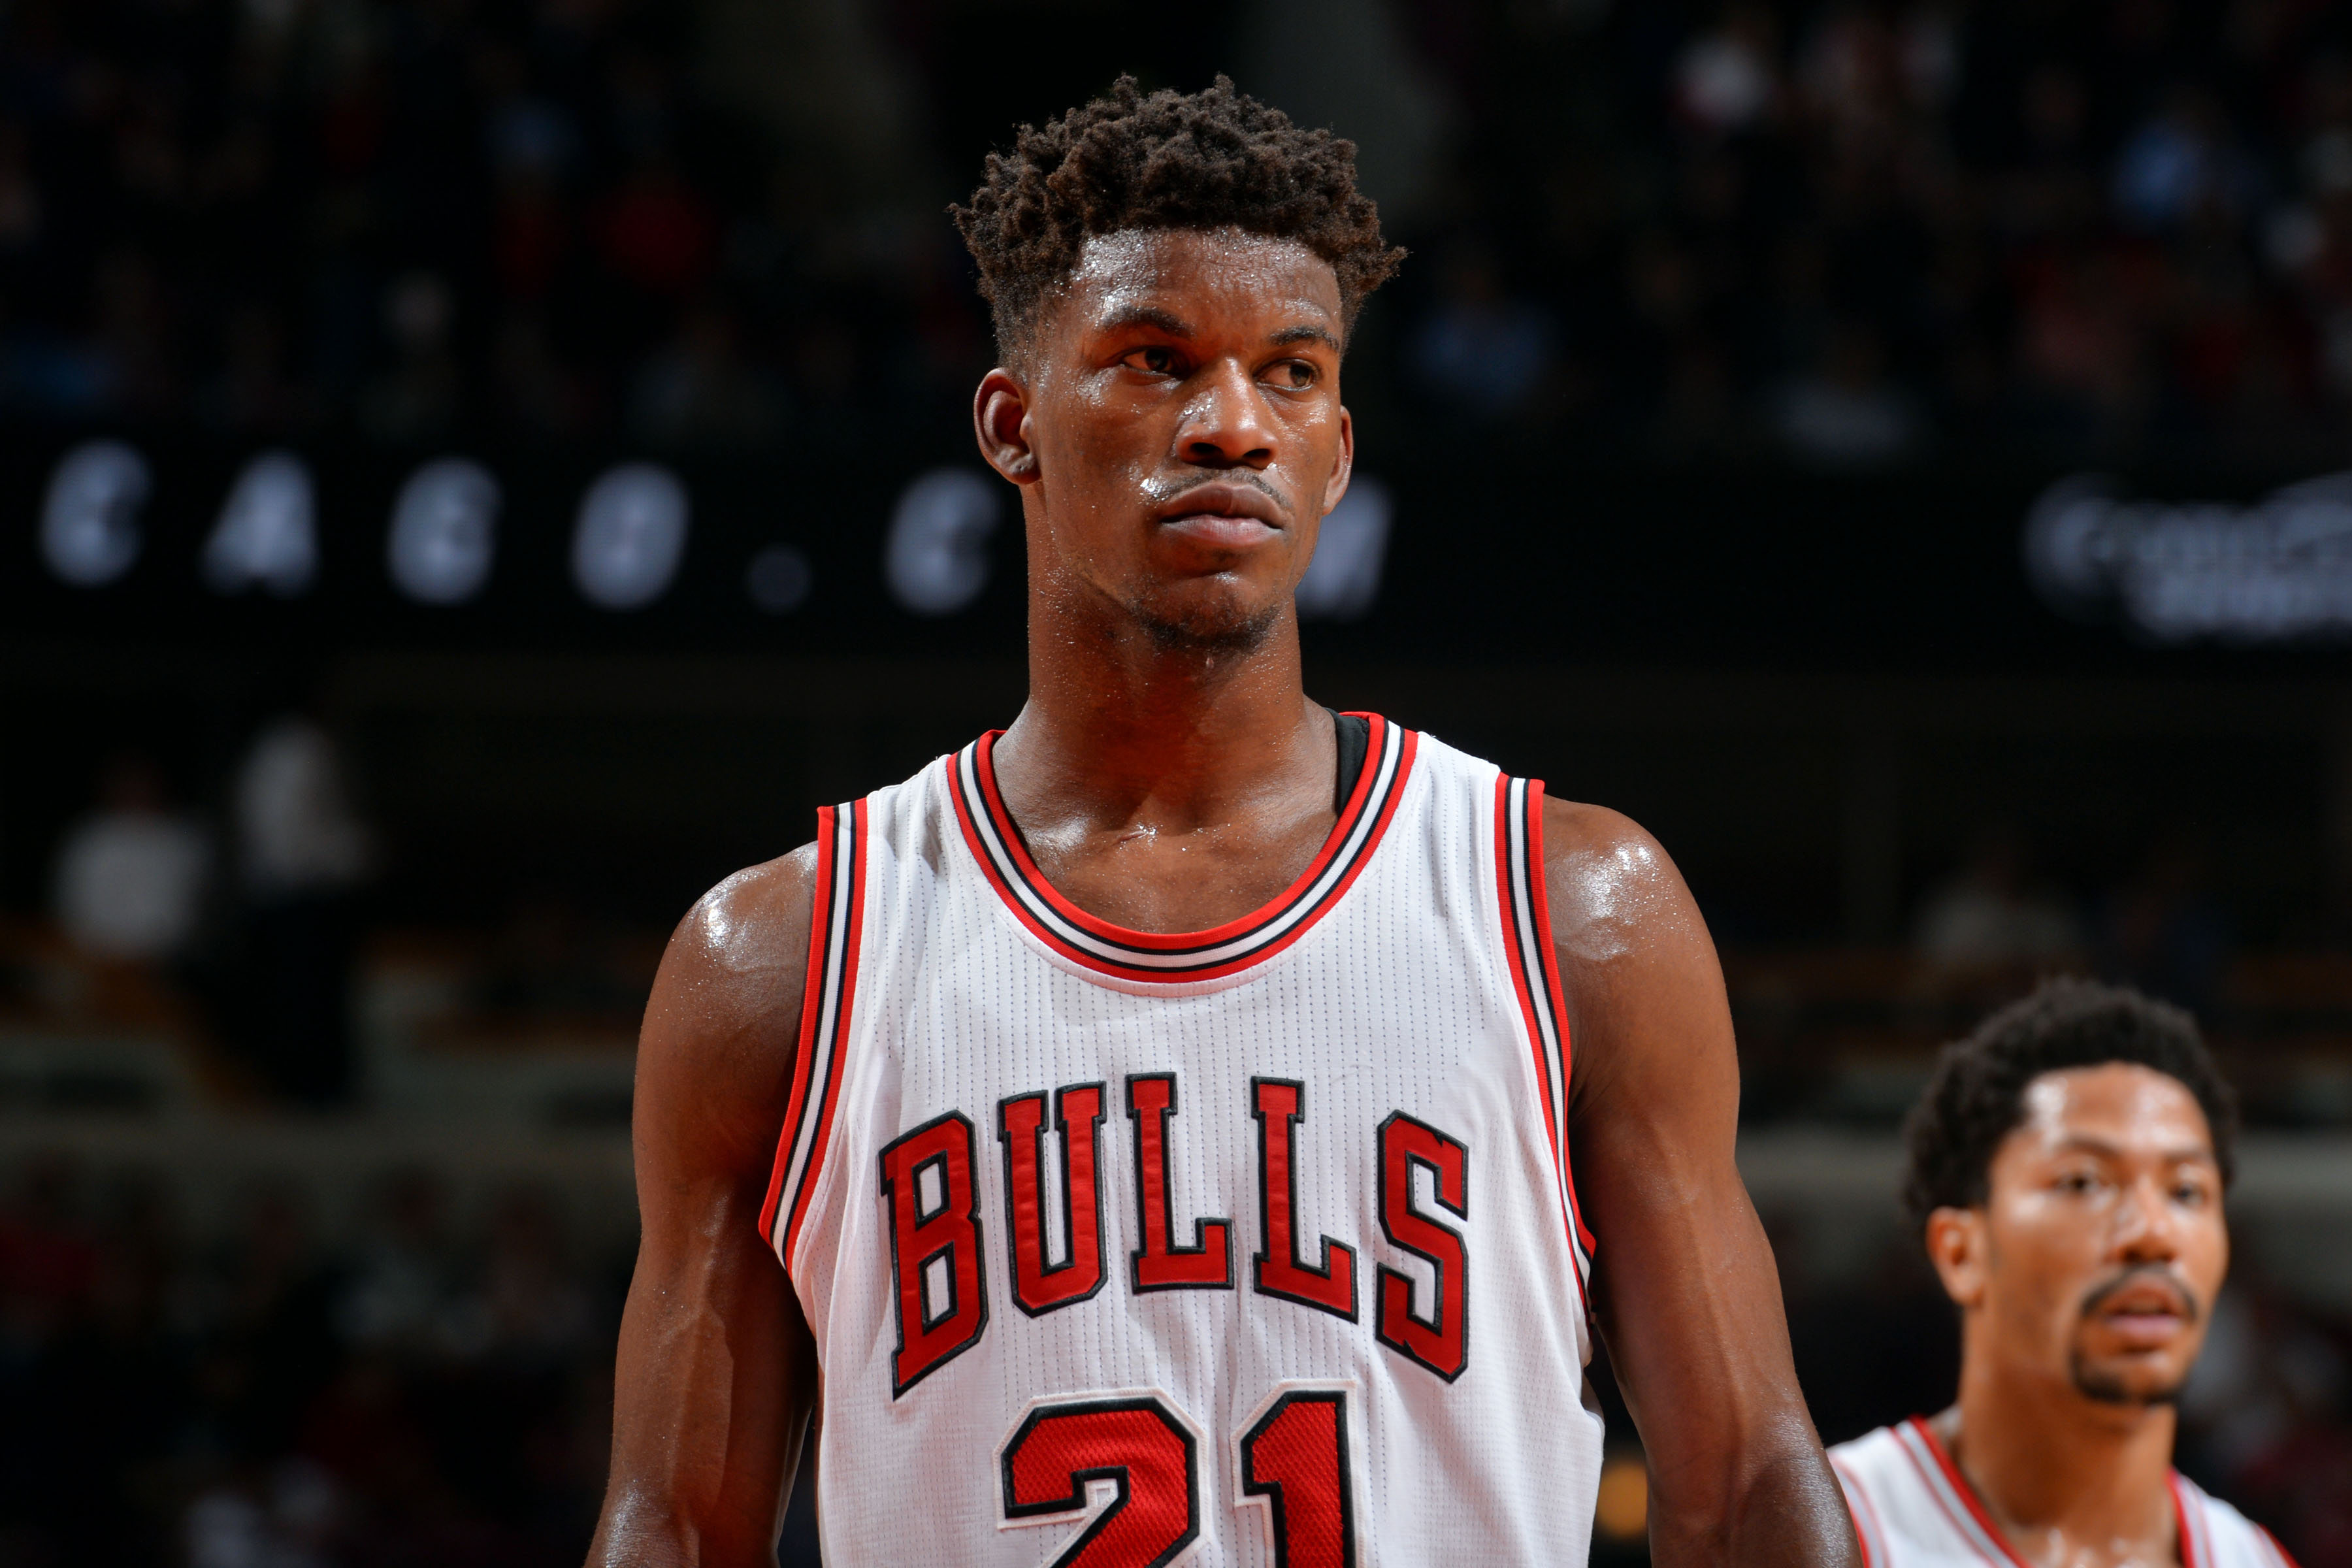 Jimmy Butler of the Chicago Bulls on May 14, in Chicago.